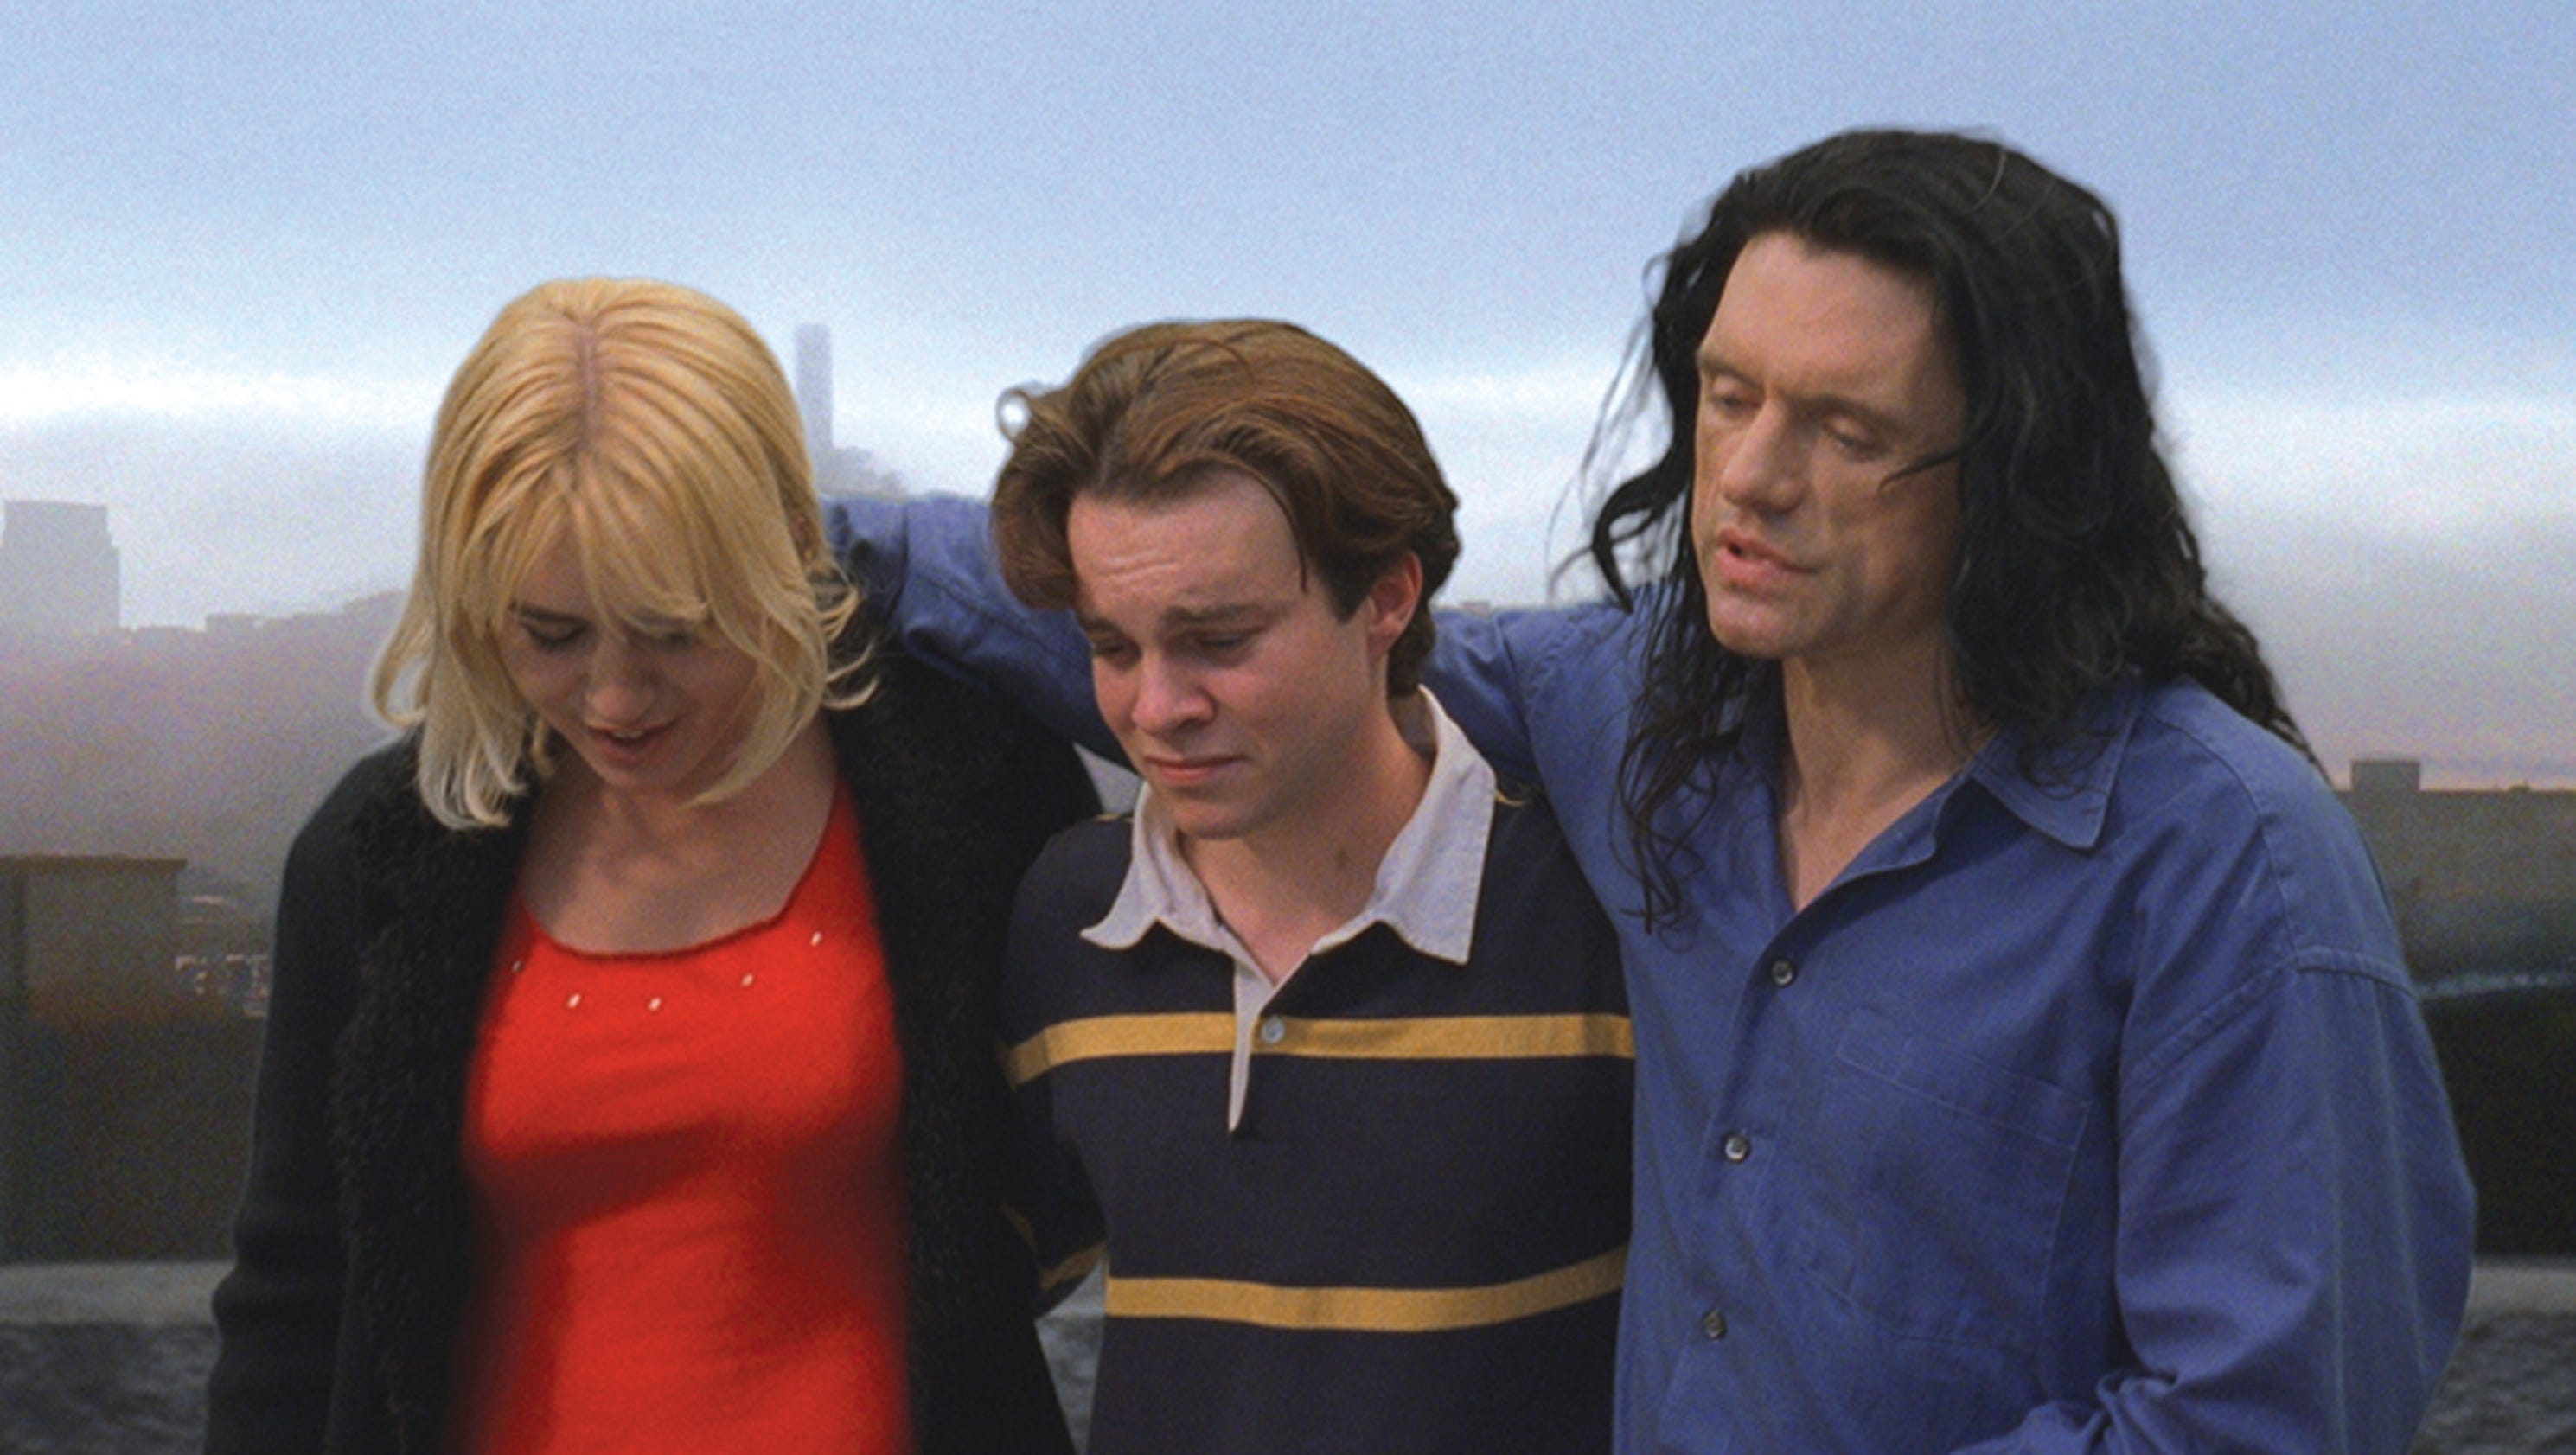 Oh Hi Here S James Franco As The Room S Tommy Wiseau